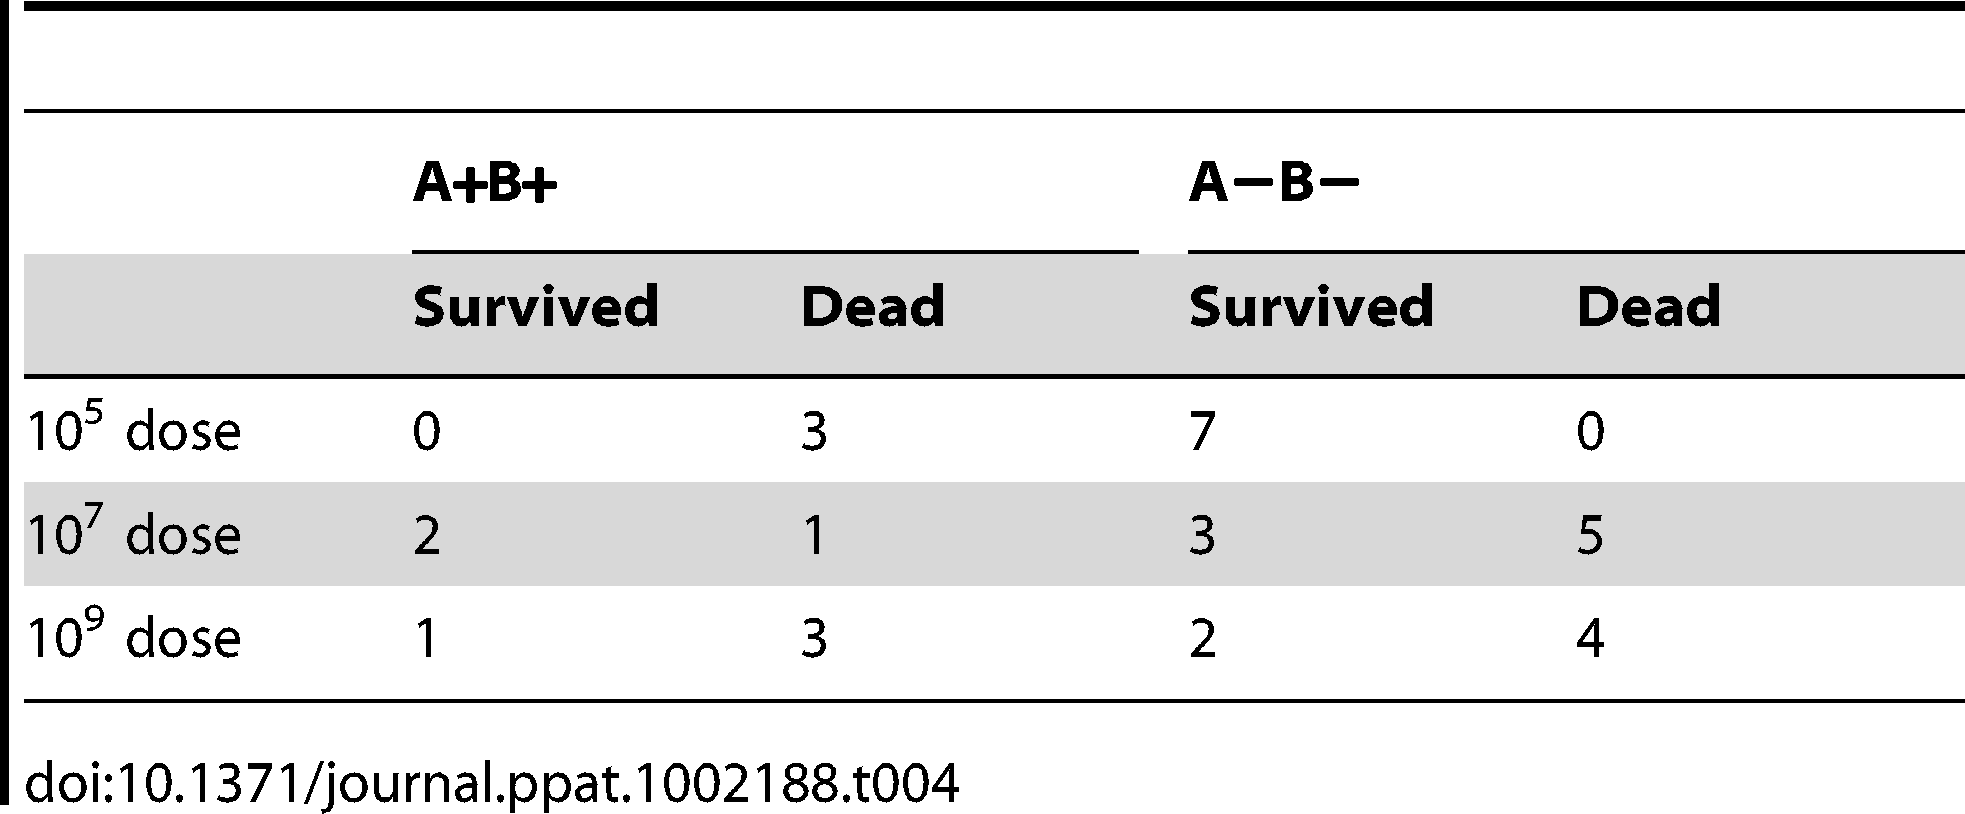 A+B+ and A−B− phenotypes and survival and death of rabbits from G4 challenge experiment.